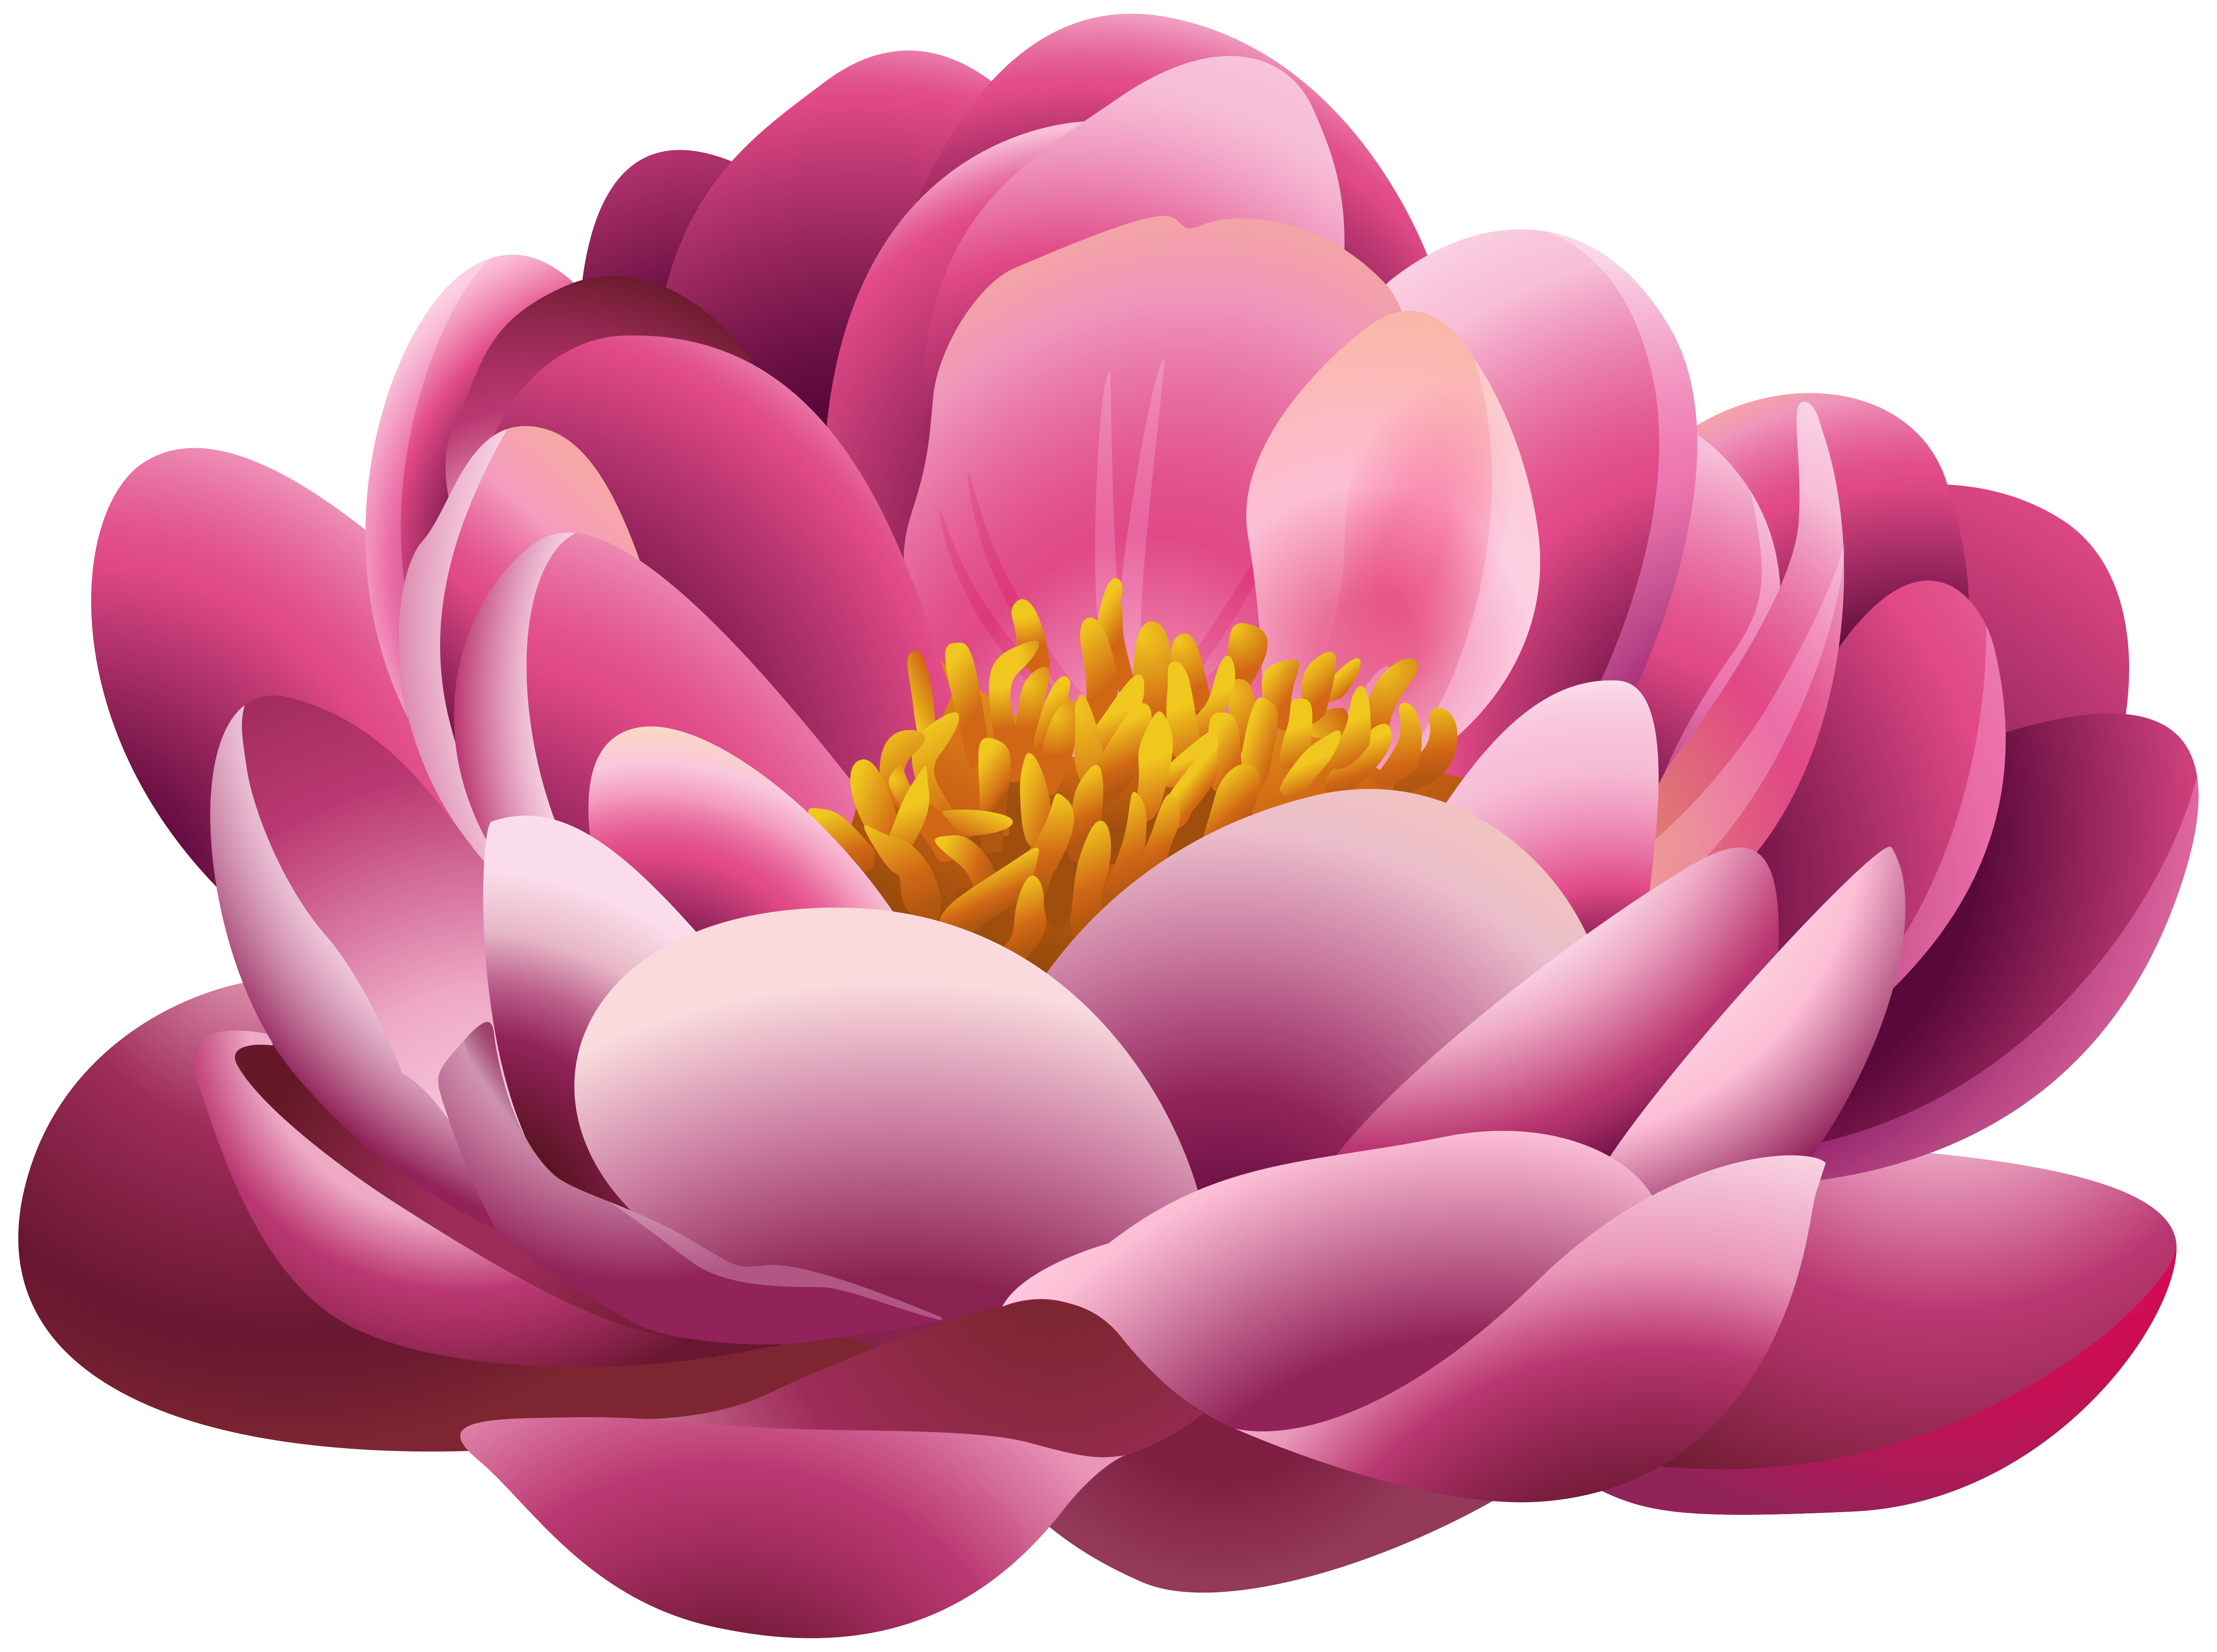 Beautiful flower png. Pink clipart image gallery